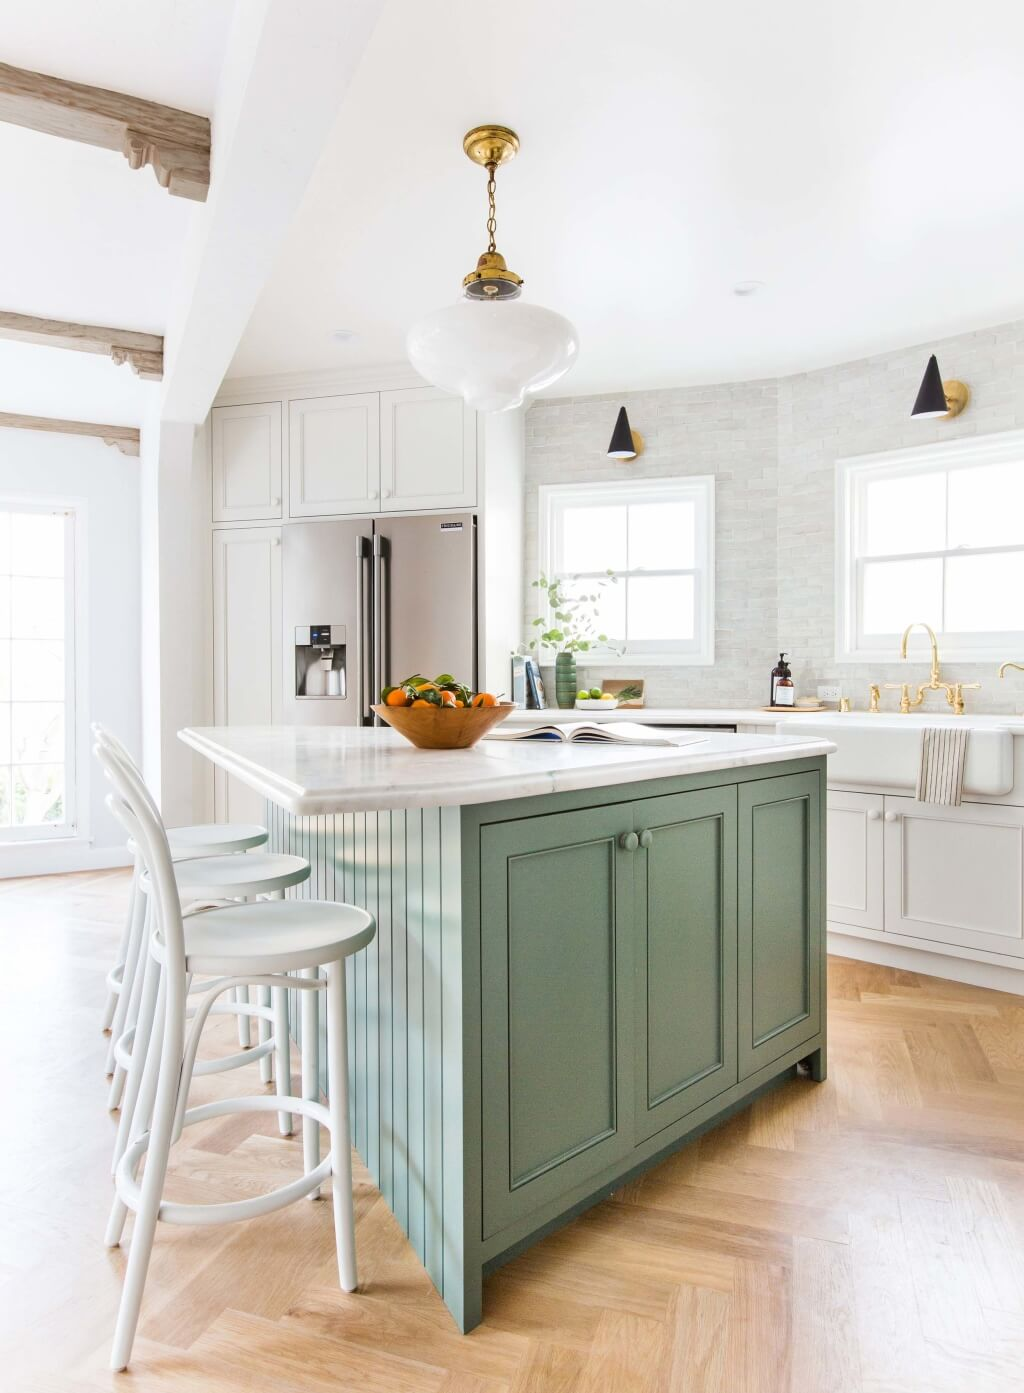 Emily-Henderson_Frigidaire_Kitchen-Reveal_Waverly_English-Modern_Edited-Beams_18-1024x1393